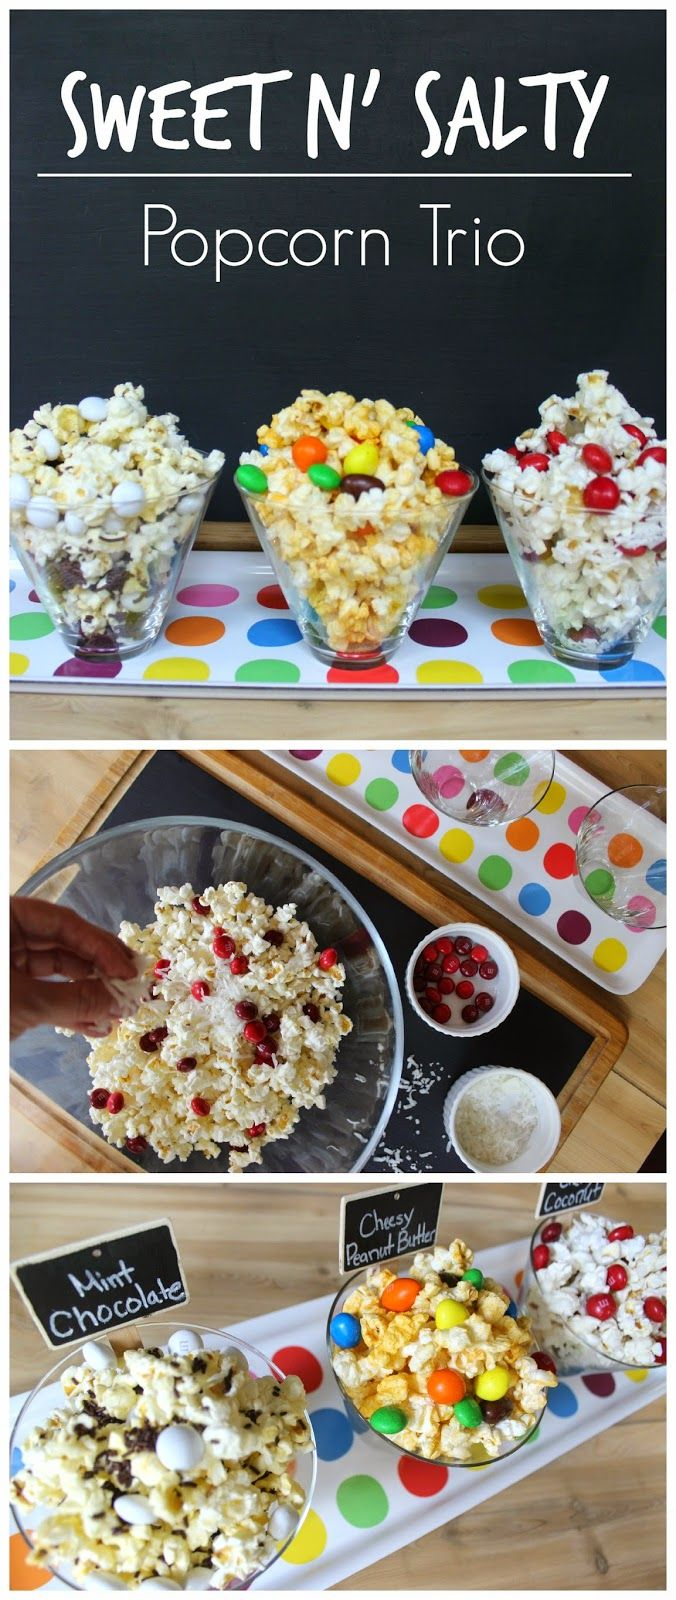 Sweet N' Salty Popcorn Trio #popcorn #sweetnsalty #M&Ms #dessert #food #recipes #partyfood #moviefood #gamedayfood #OrvilleRedenbachers #MovieNight4Less #shop #cbias